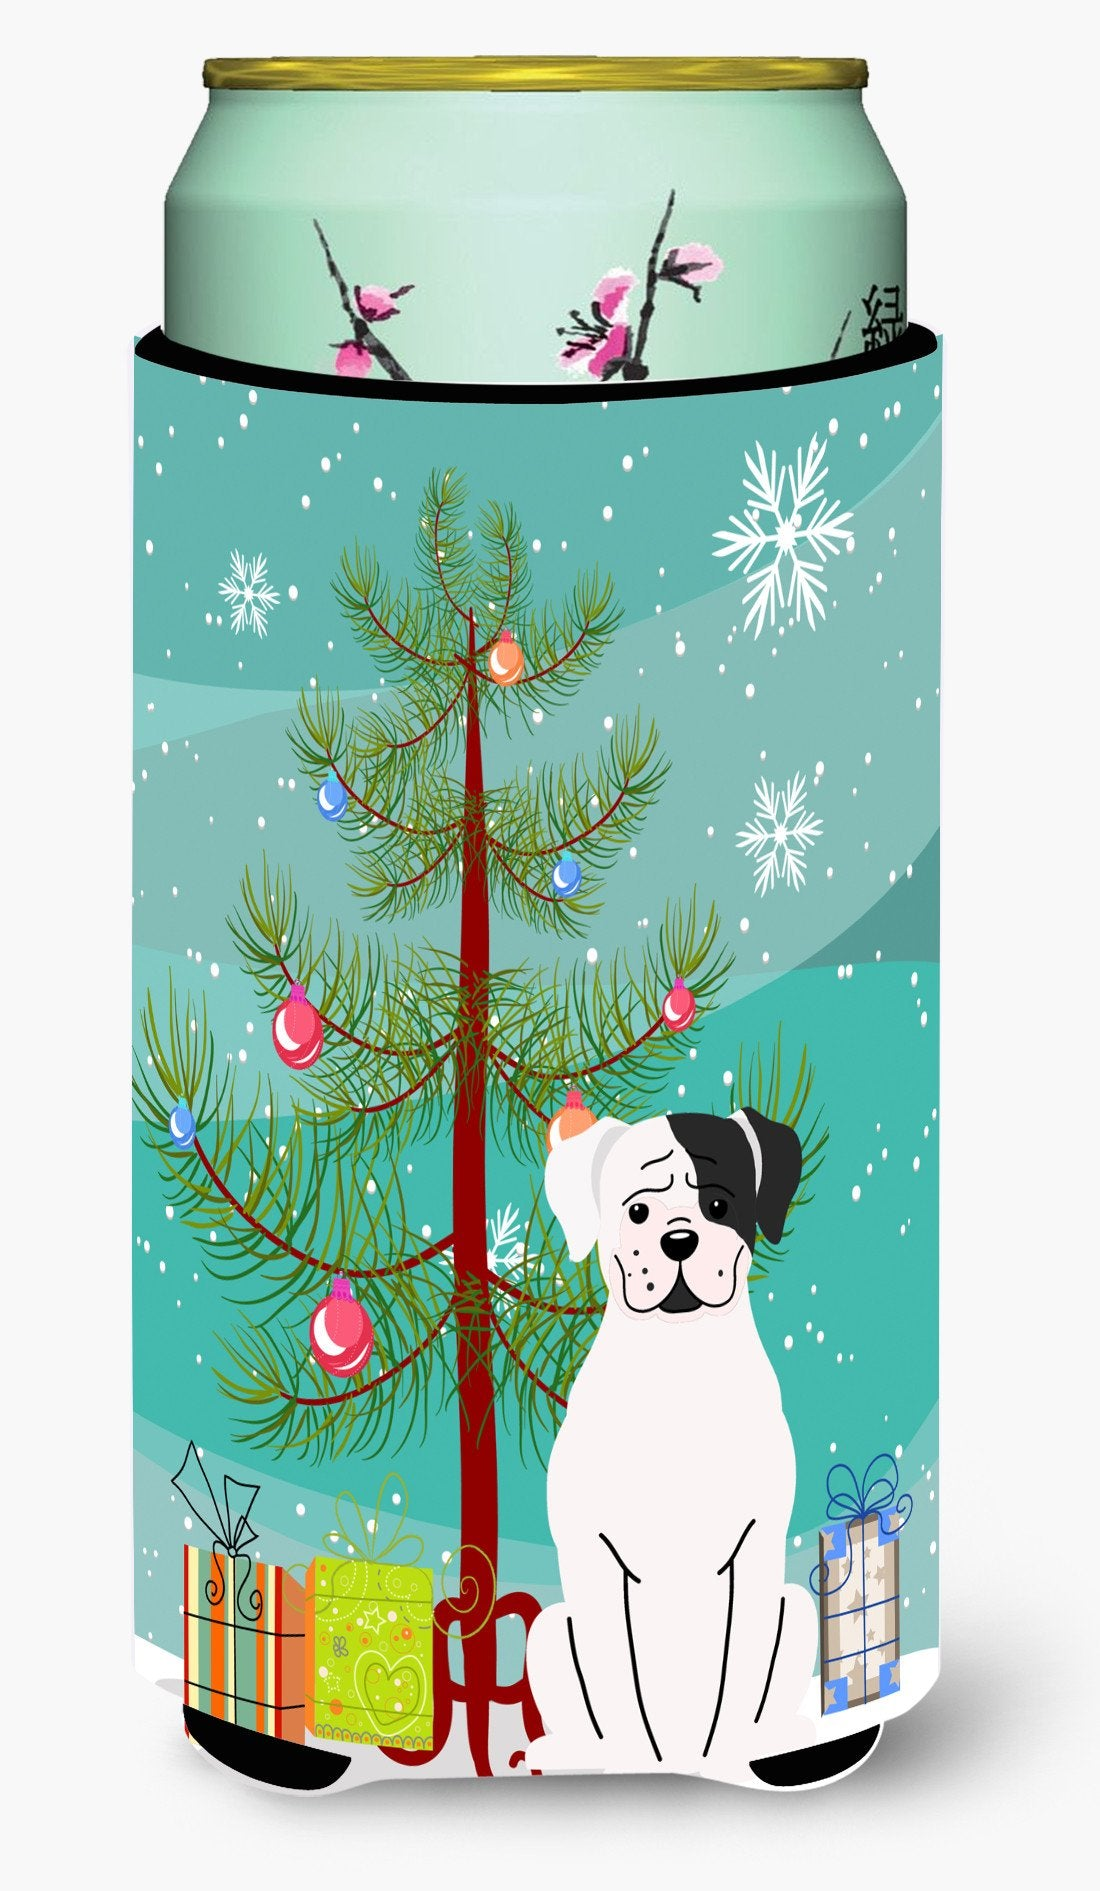 Merry Christmas Tree White Boxer Cooper Tall Boy Beverage Insulator Hugger BB4239TBC by Caroline's Treasures